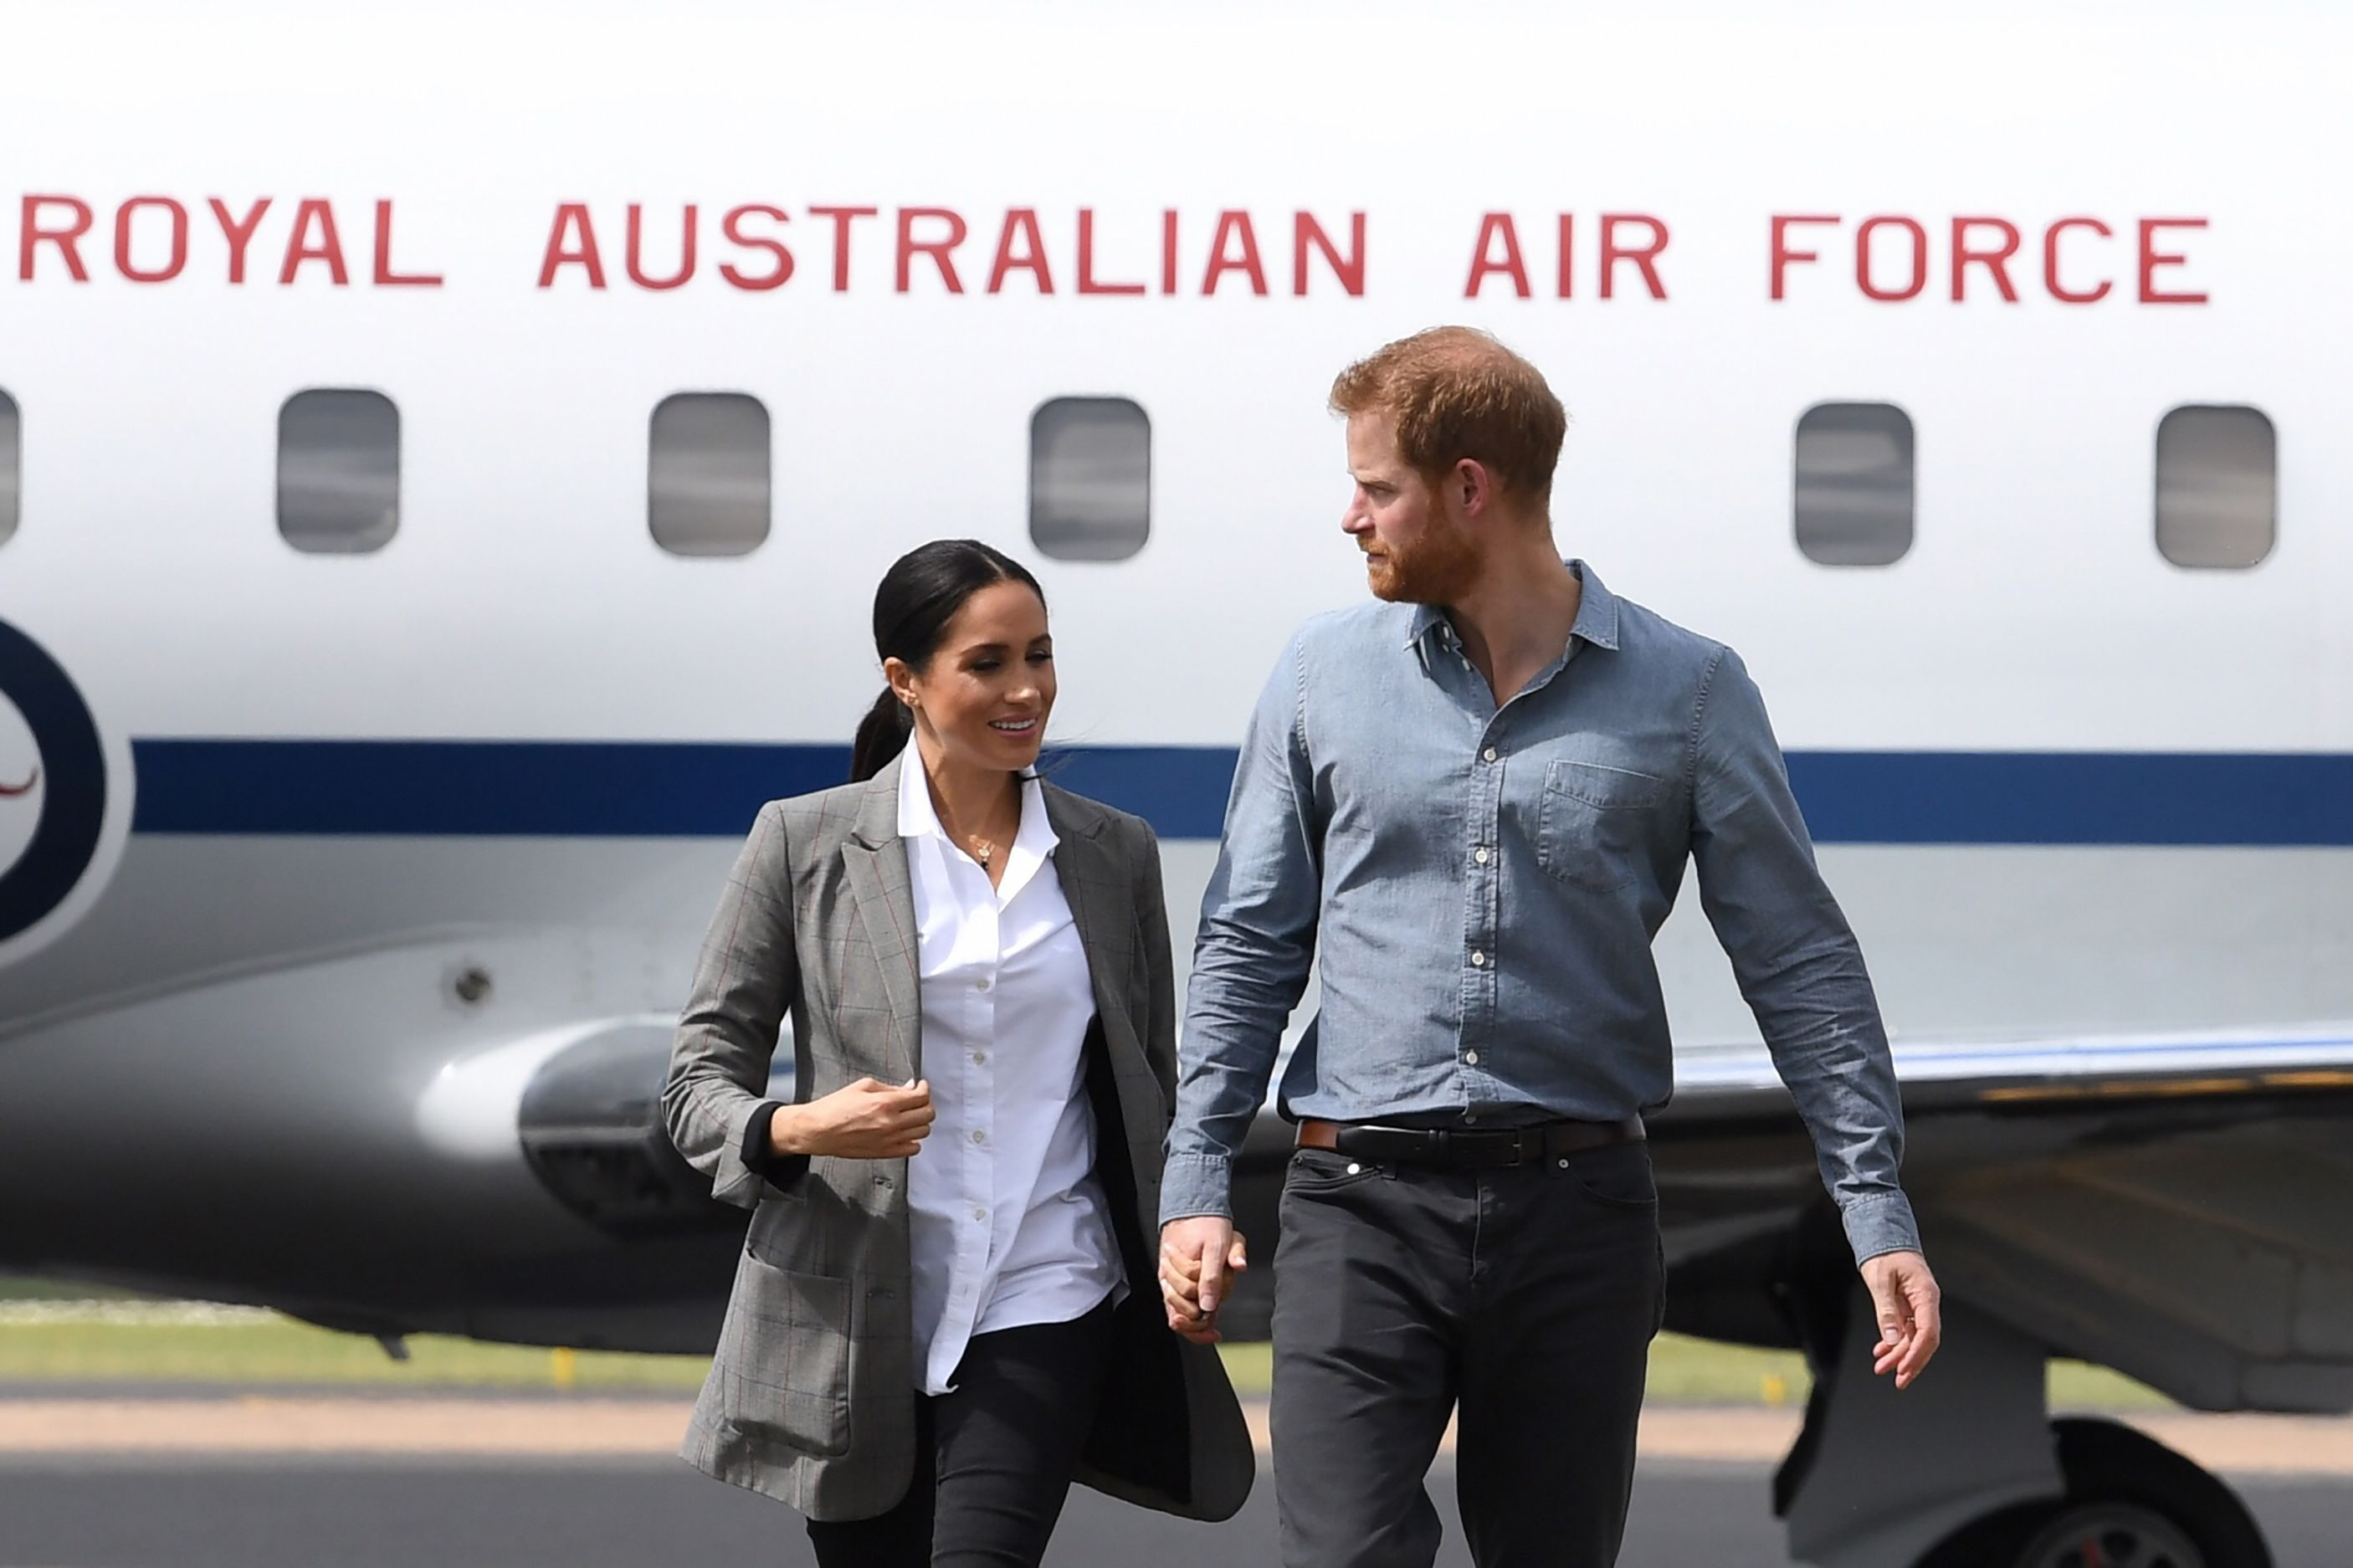 Meghan Markle and Prince Harry Could Fly Commercial—But It Won't Stop the Backlash